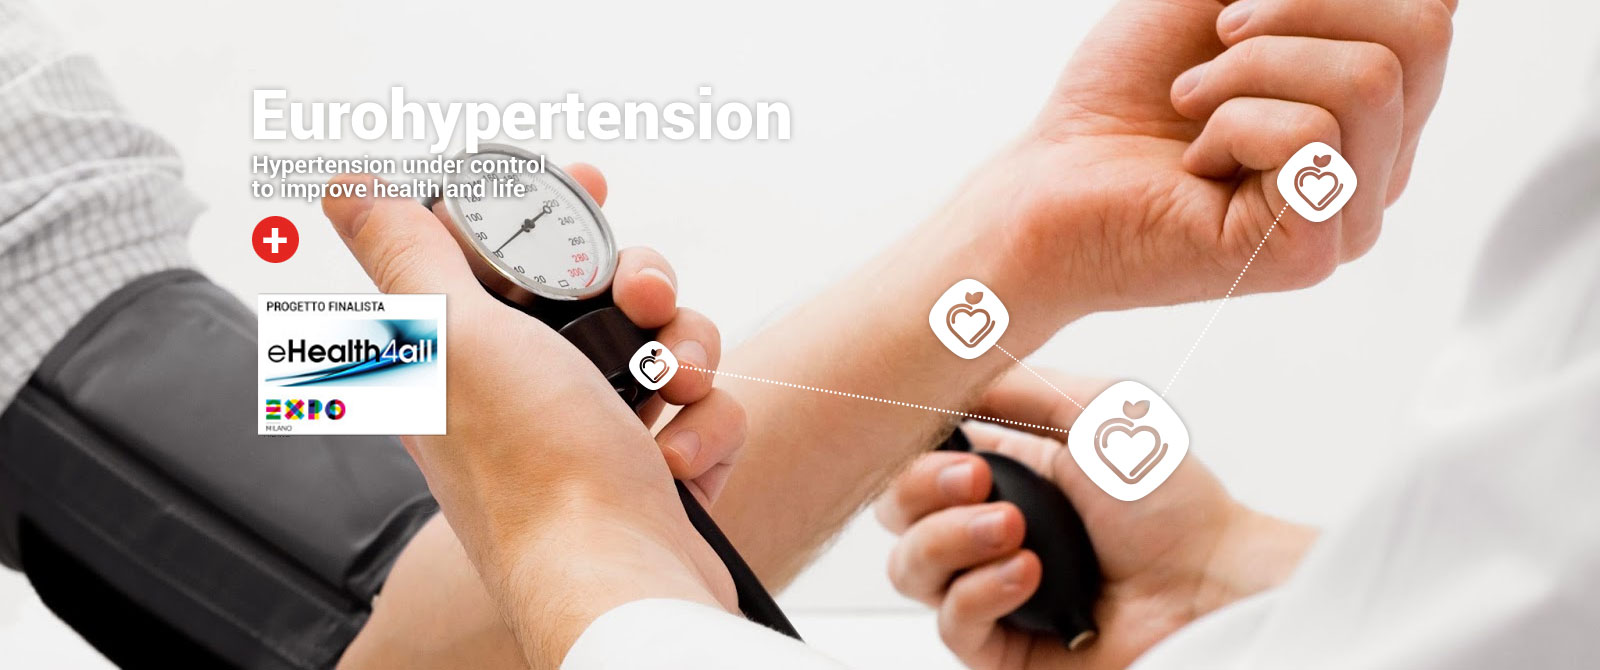 eurohypertension